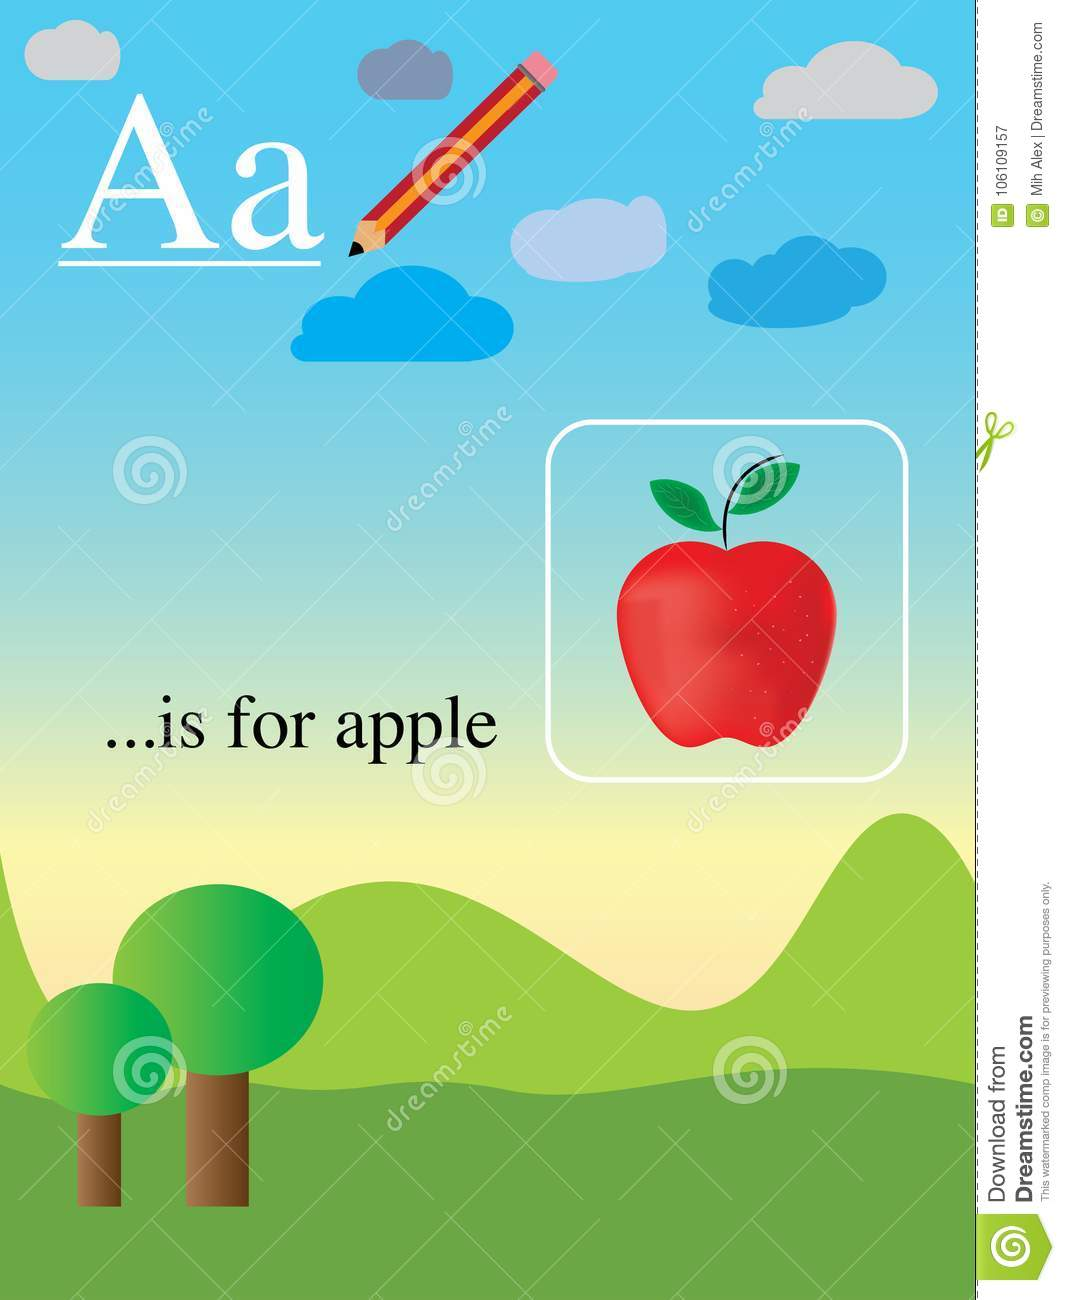 Anglais Facile Apprenant L Alphabet Anglais Facile Et Amusement Illustration De